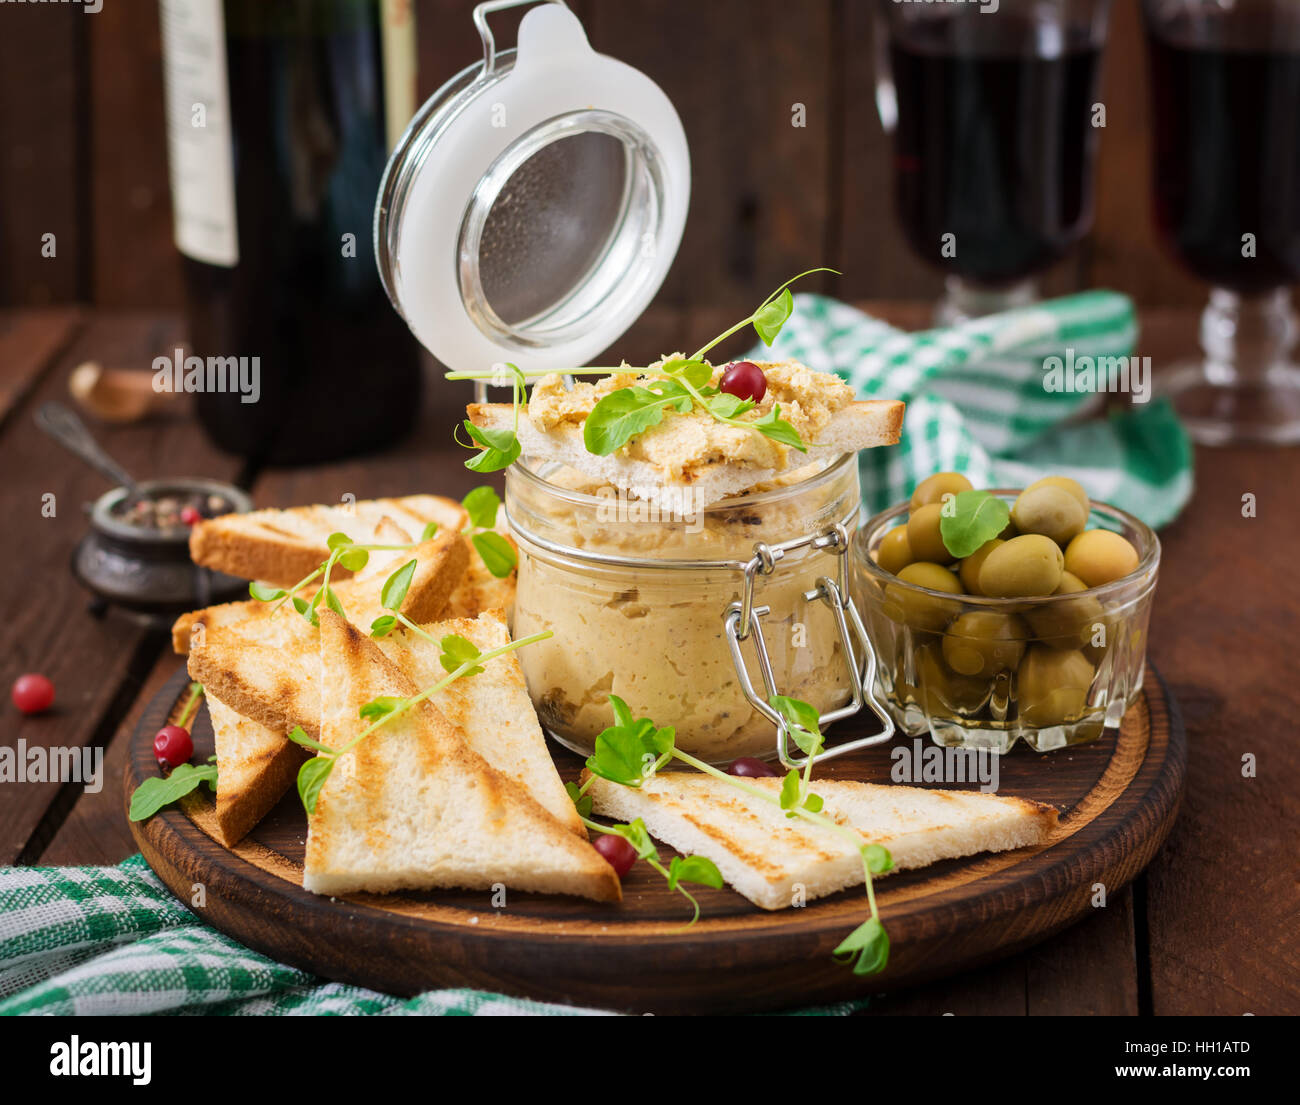 Pate Chicken - rillette, toast, olives and herbs on a wooden board - Stock Image